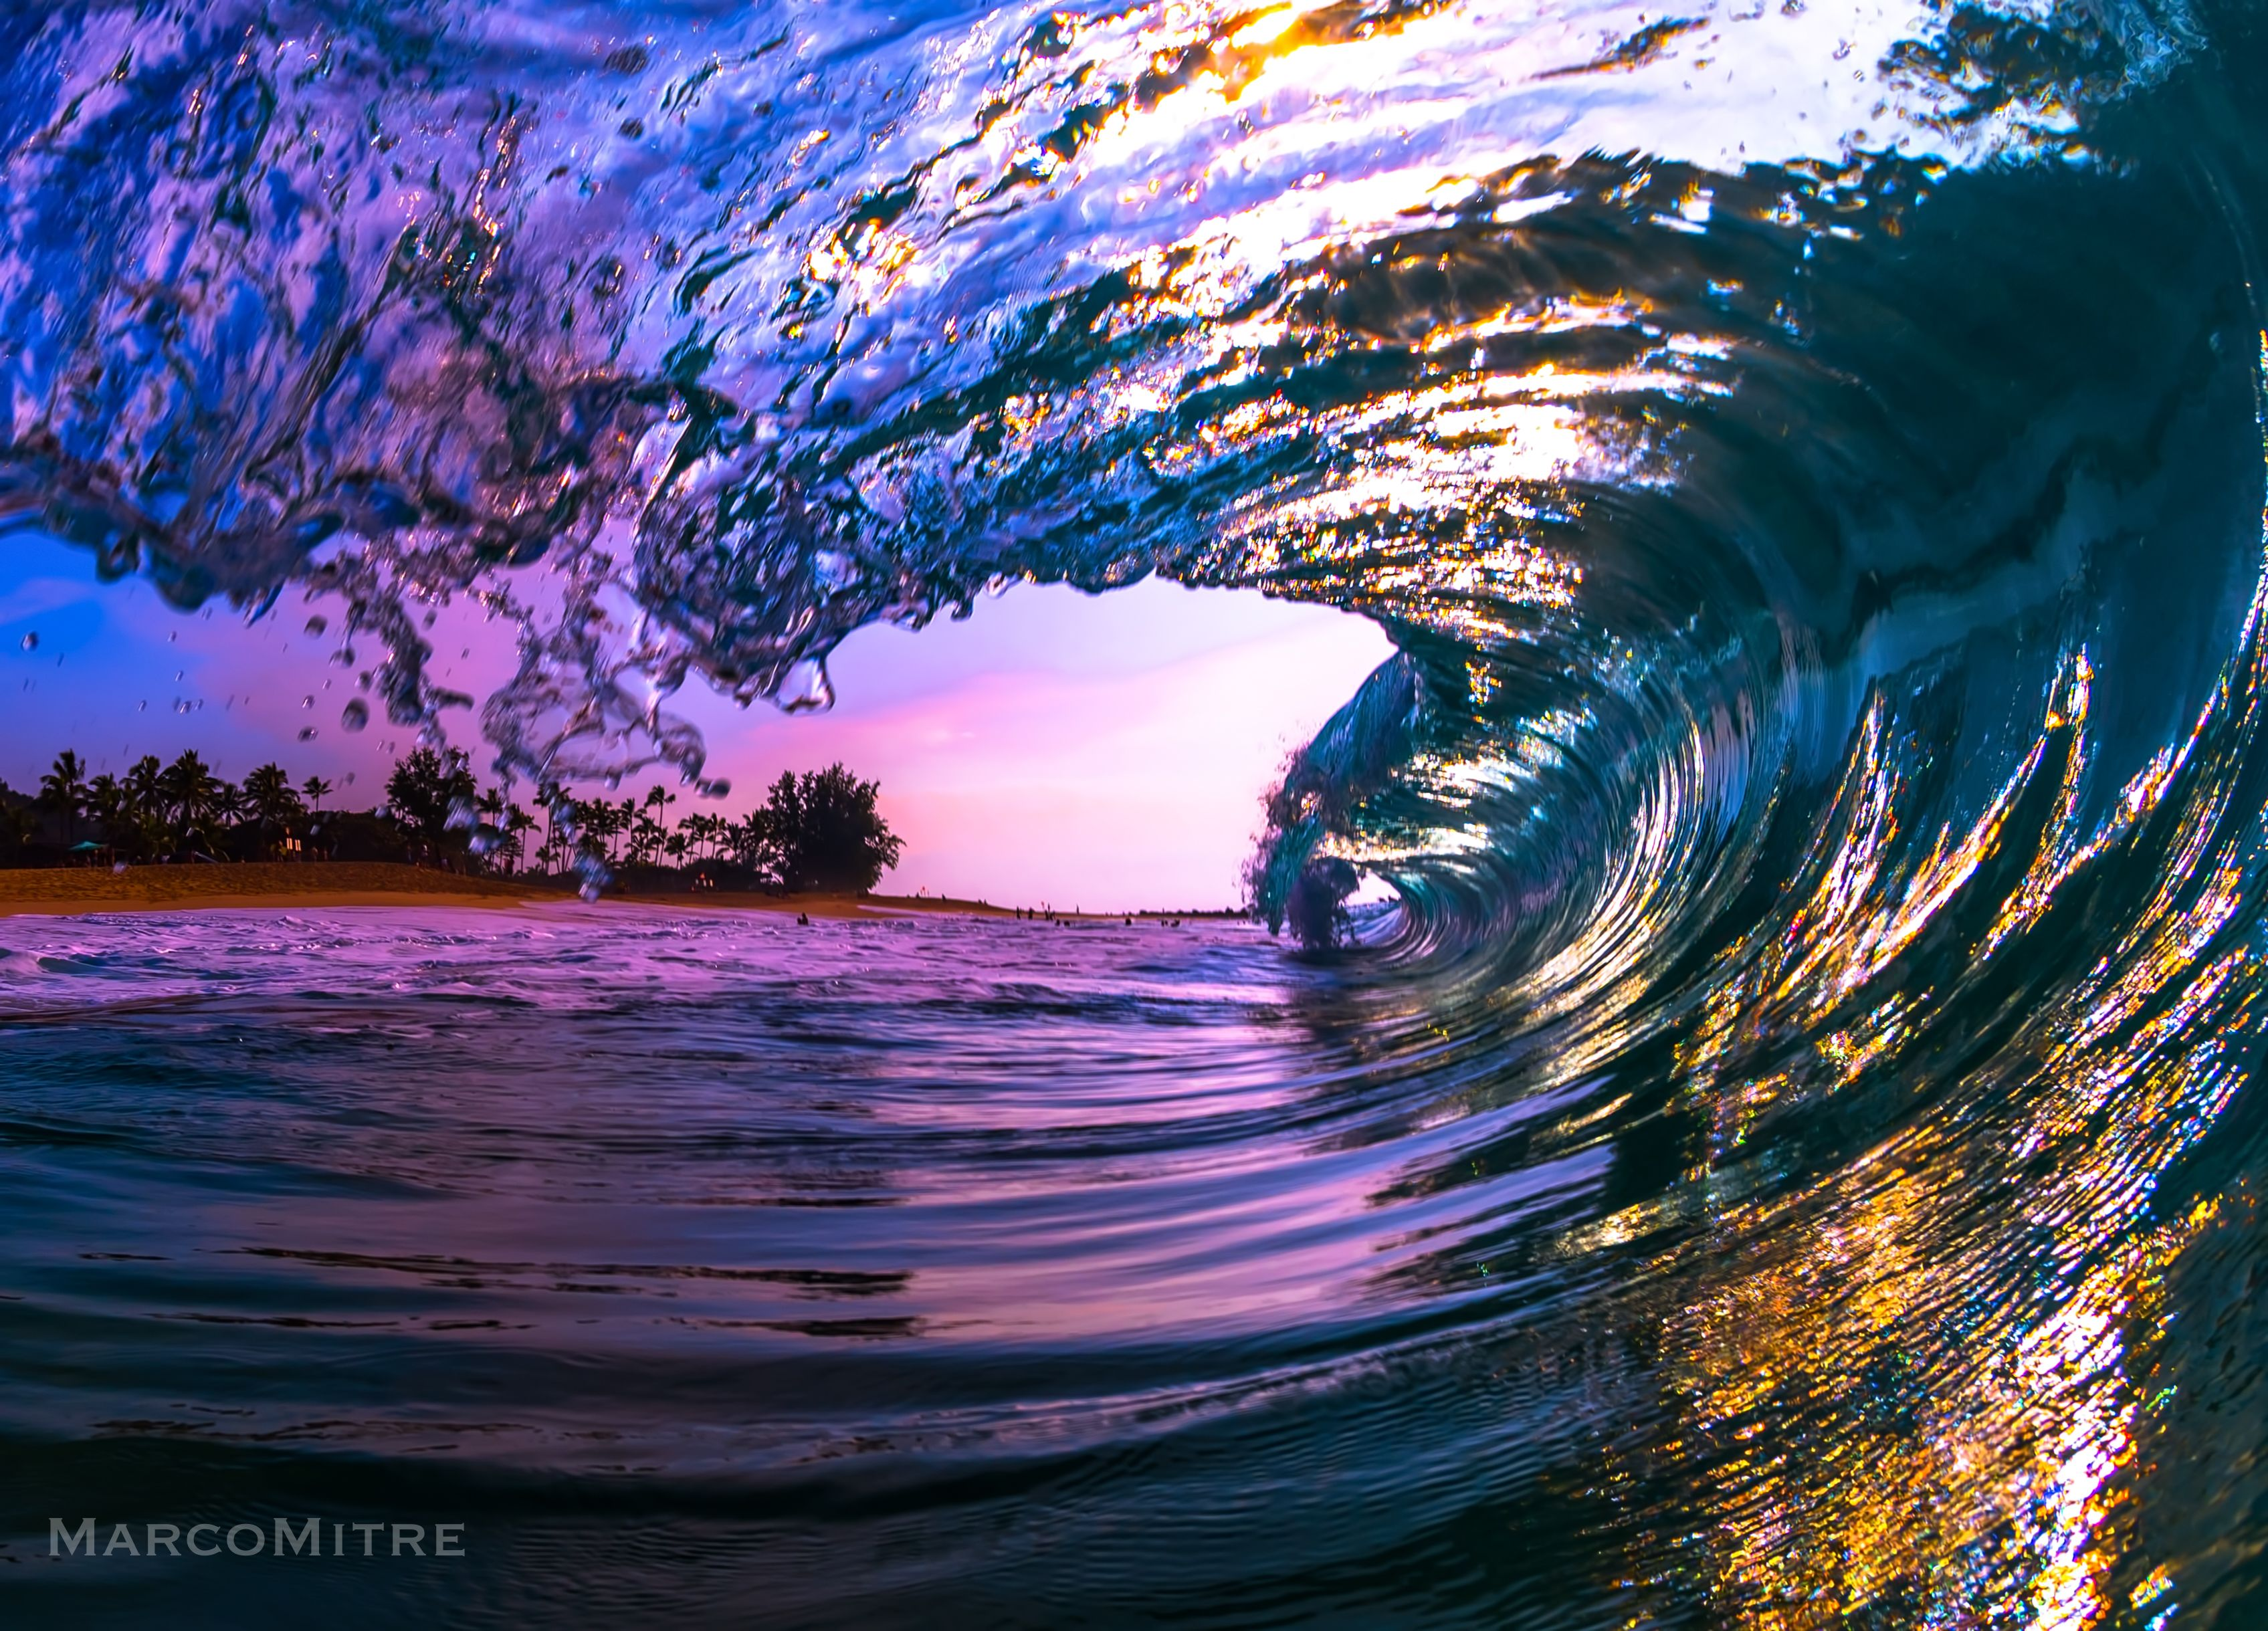 Pin By Marco Mitre Photography On Marco Mitre Photography - Incredible photographs of crashing ocean waves by ben thouard